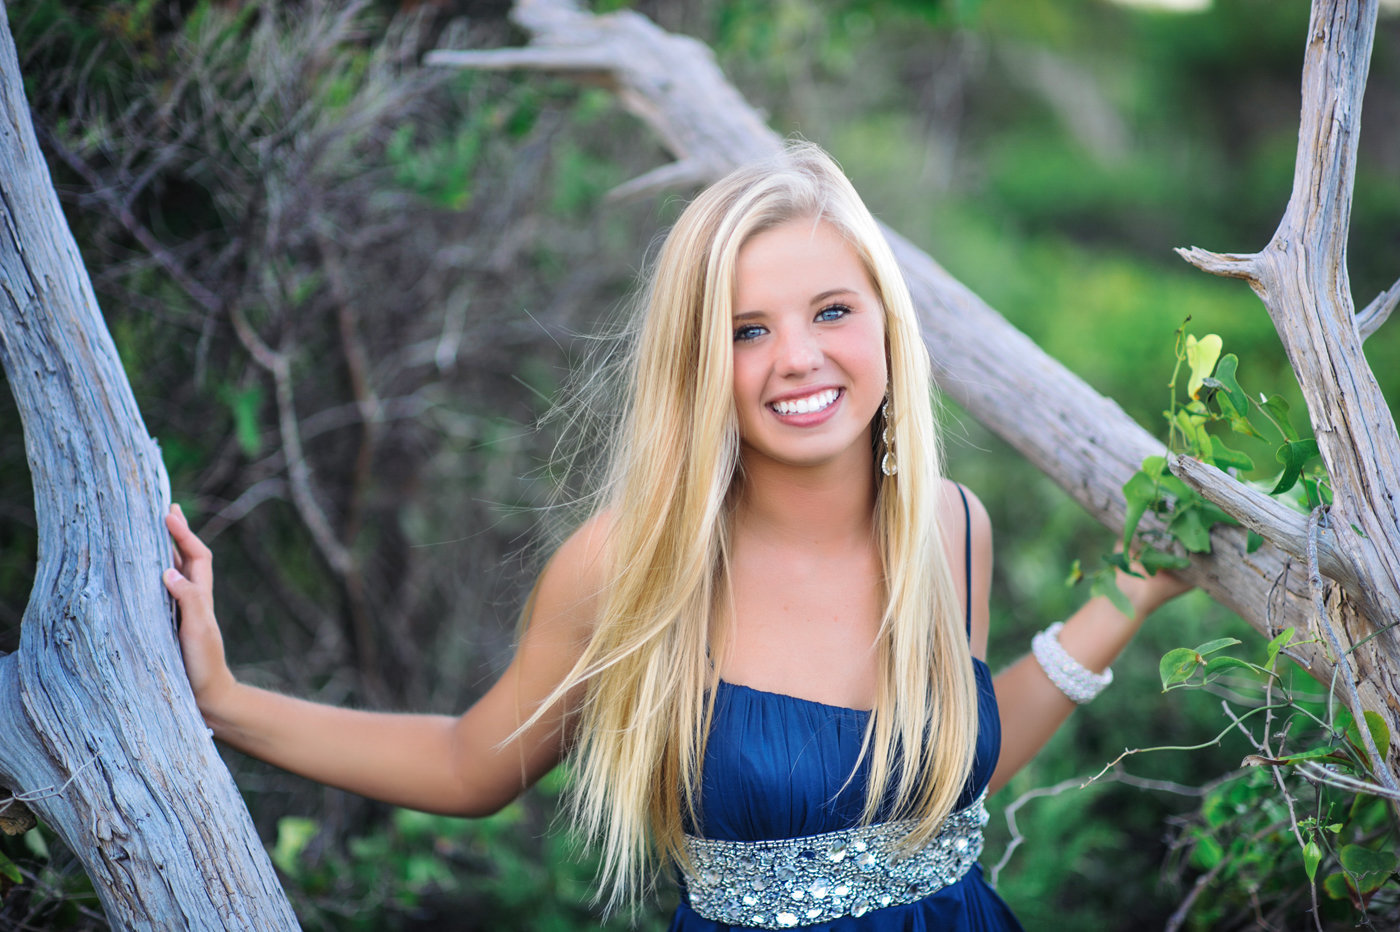 Myrtle Beach Senior Pictures - Top Senior Photographers in Myrtle Beach and Charleston SC